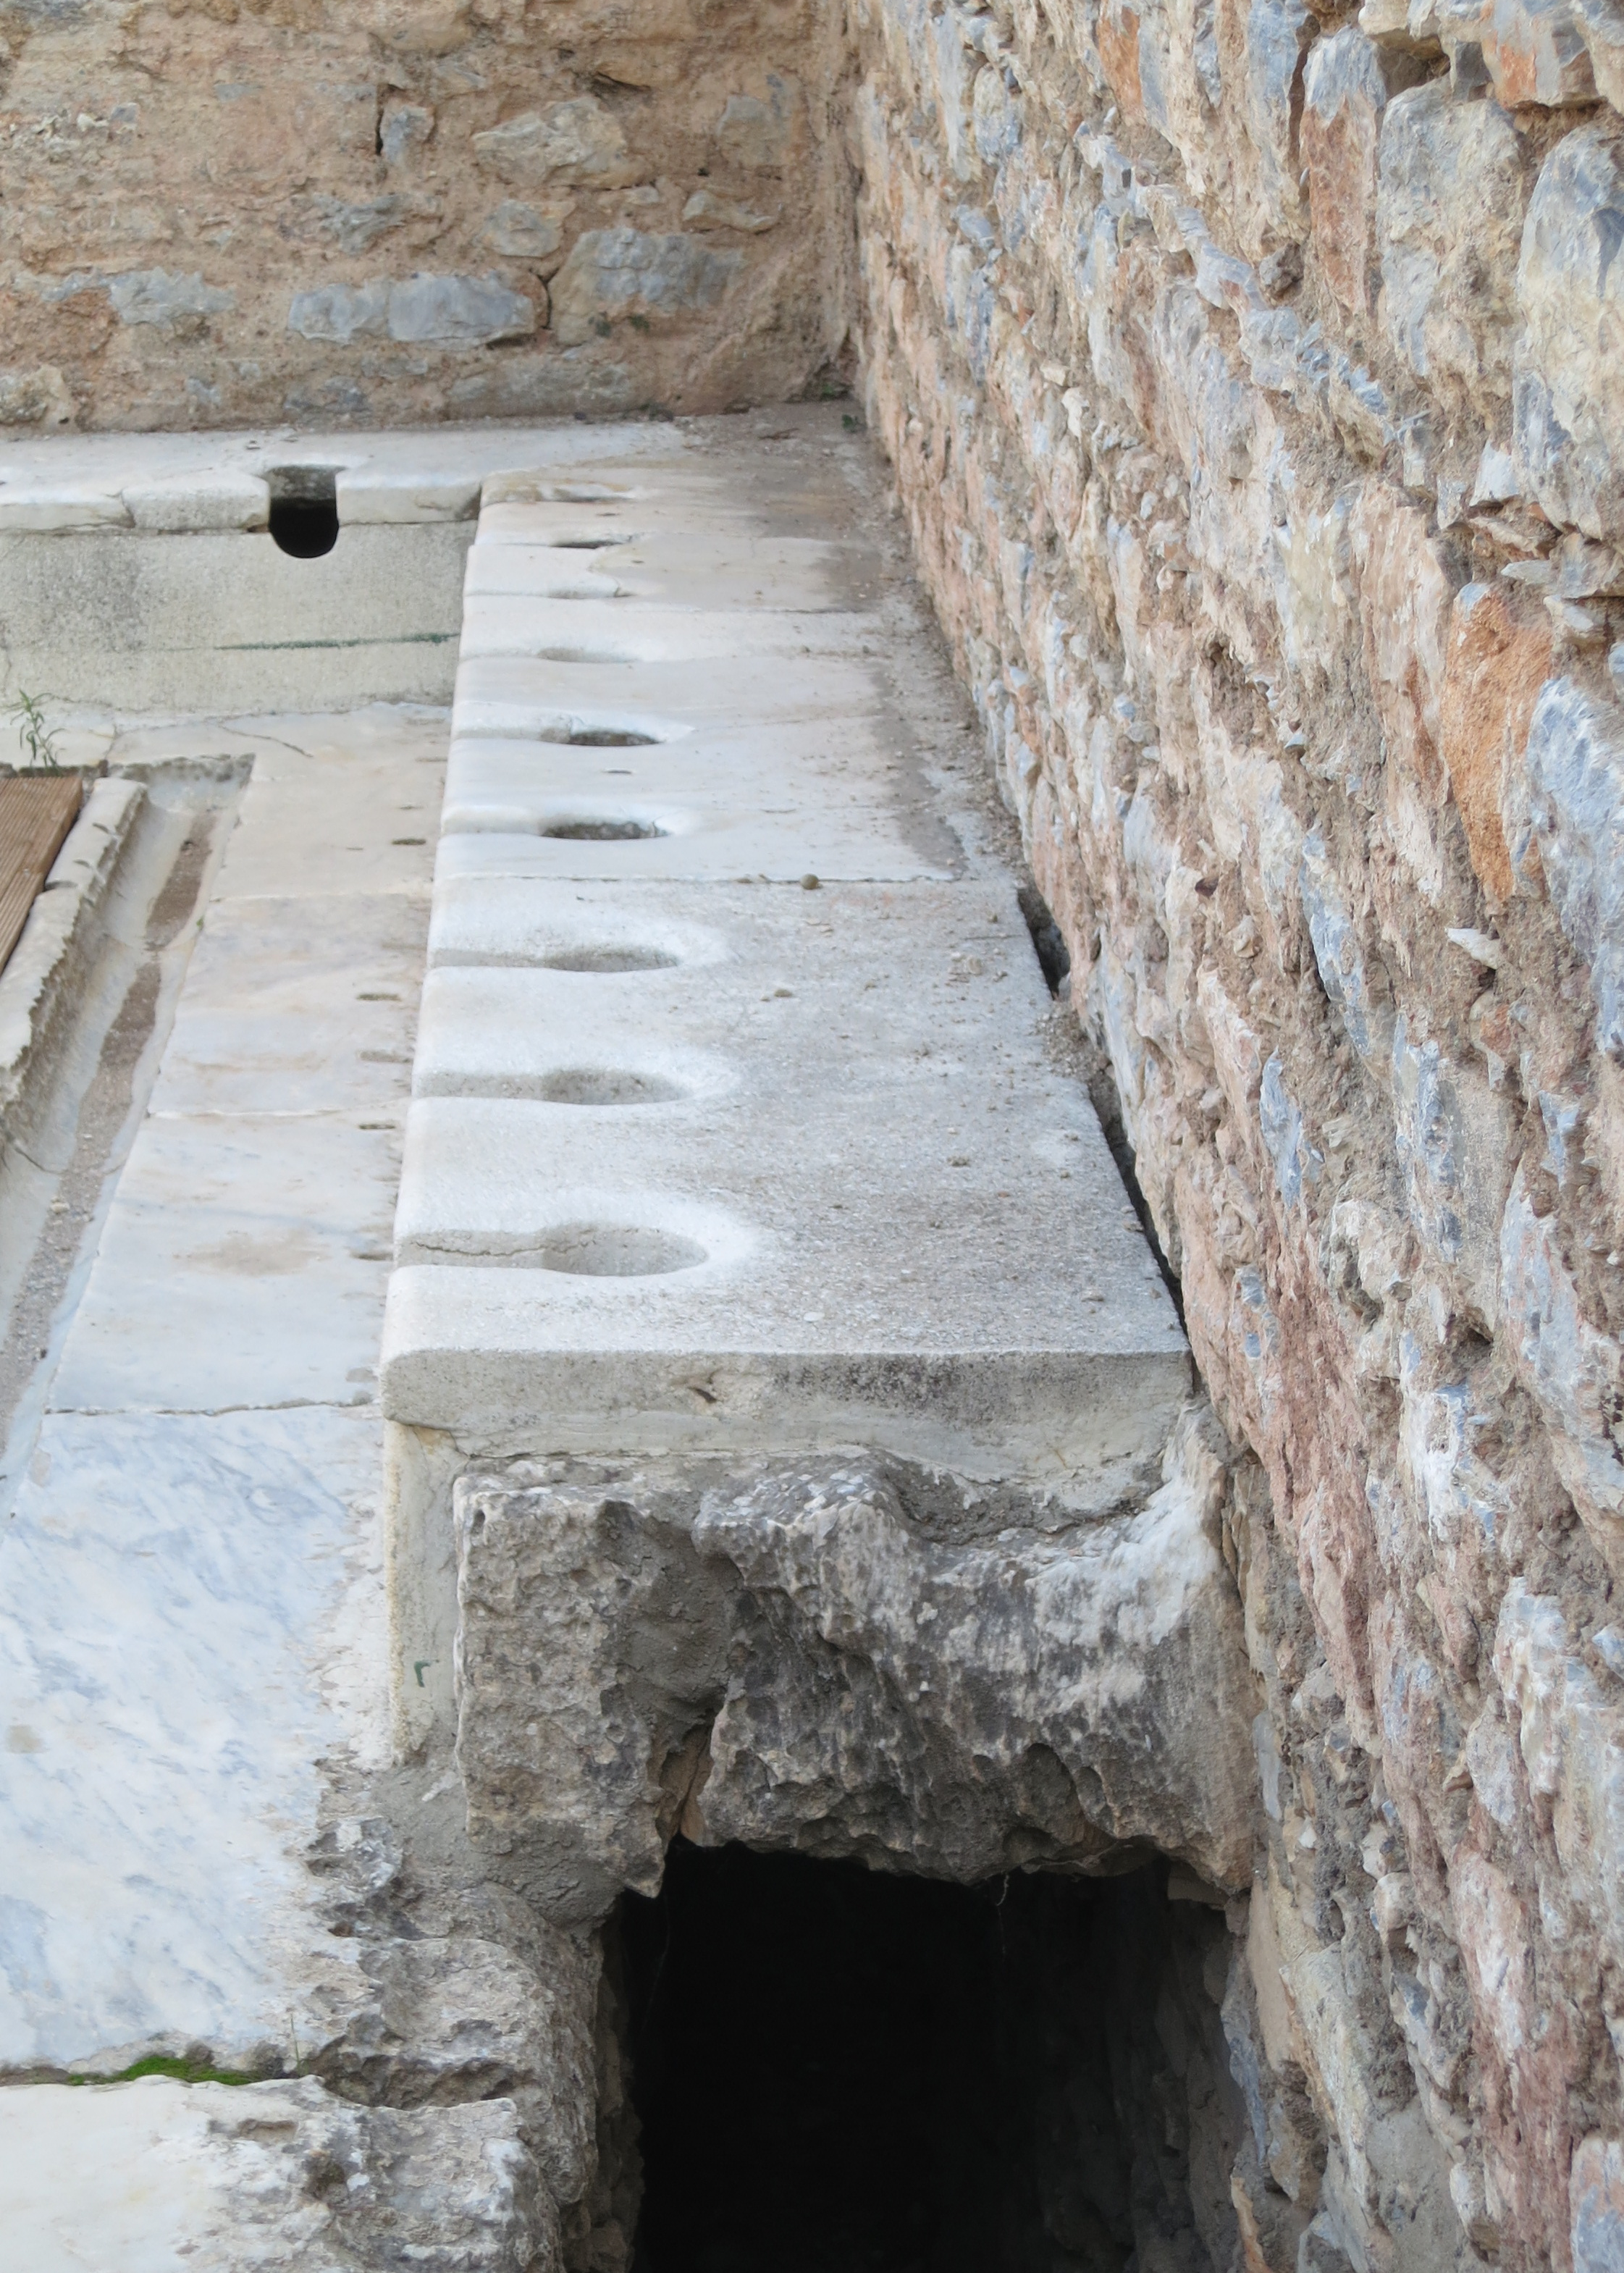 Unless you were wealthy in Ephesus, you used the common toilets shown here where you could line up with your friends and discuss the day's news while taking care of business. The men's toilet house could accommodate up to 40 people at once.